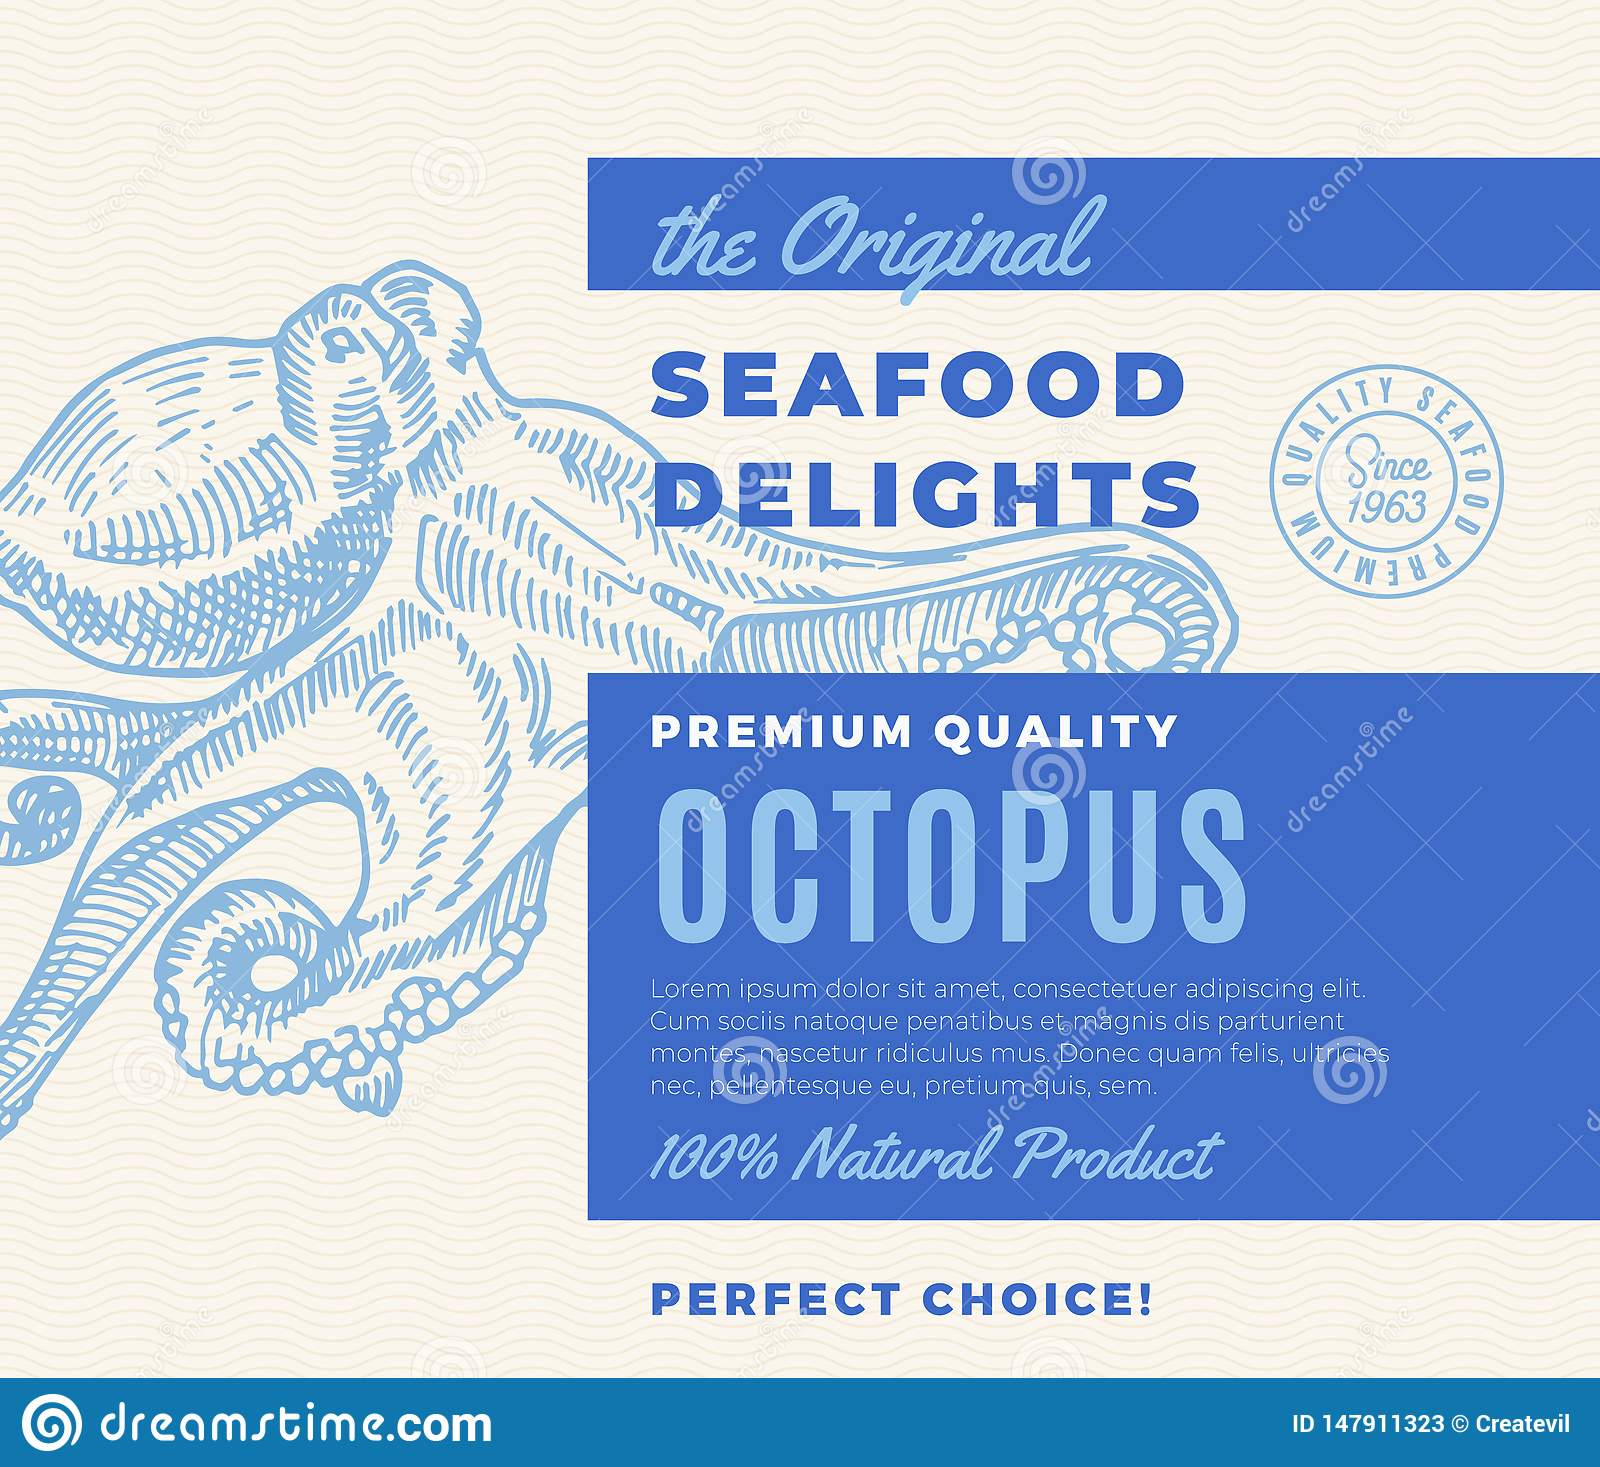 Premium Quality Seafood Delights. Abstract Vector Packaging Design or Label. Modern Typography and Hand Drawn Octopus